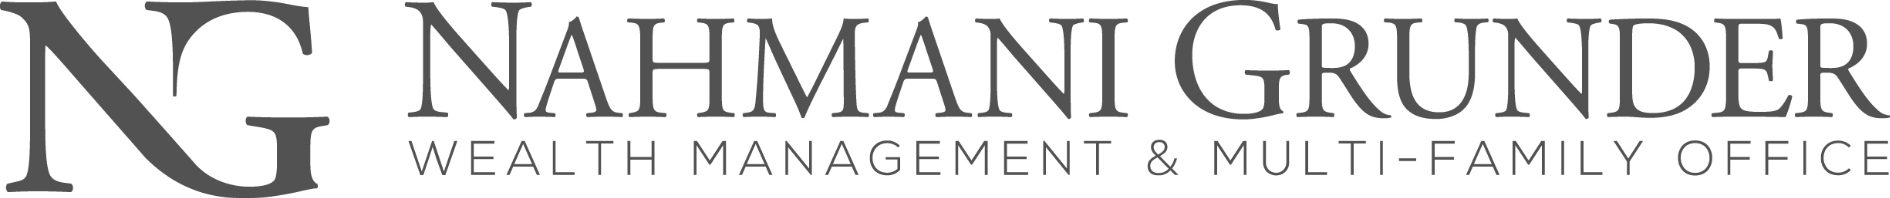 NG NAHMANI GRUNDER WEALTH MANAGEMENT & MULTI - FAMILY OFFICE